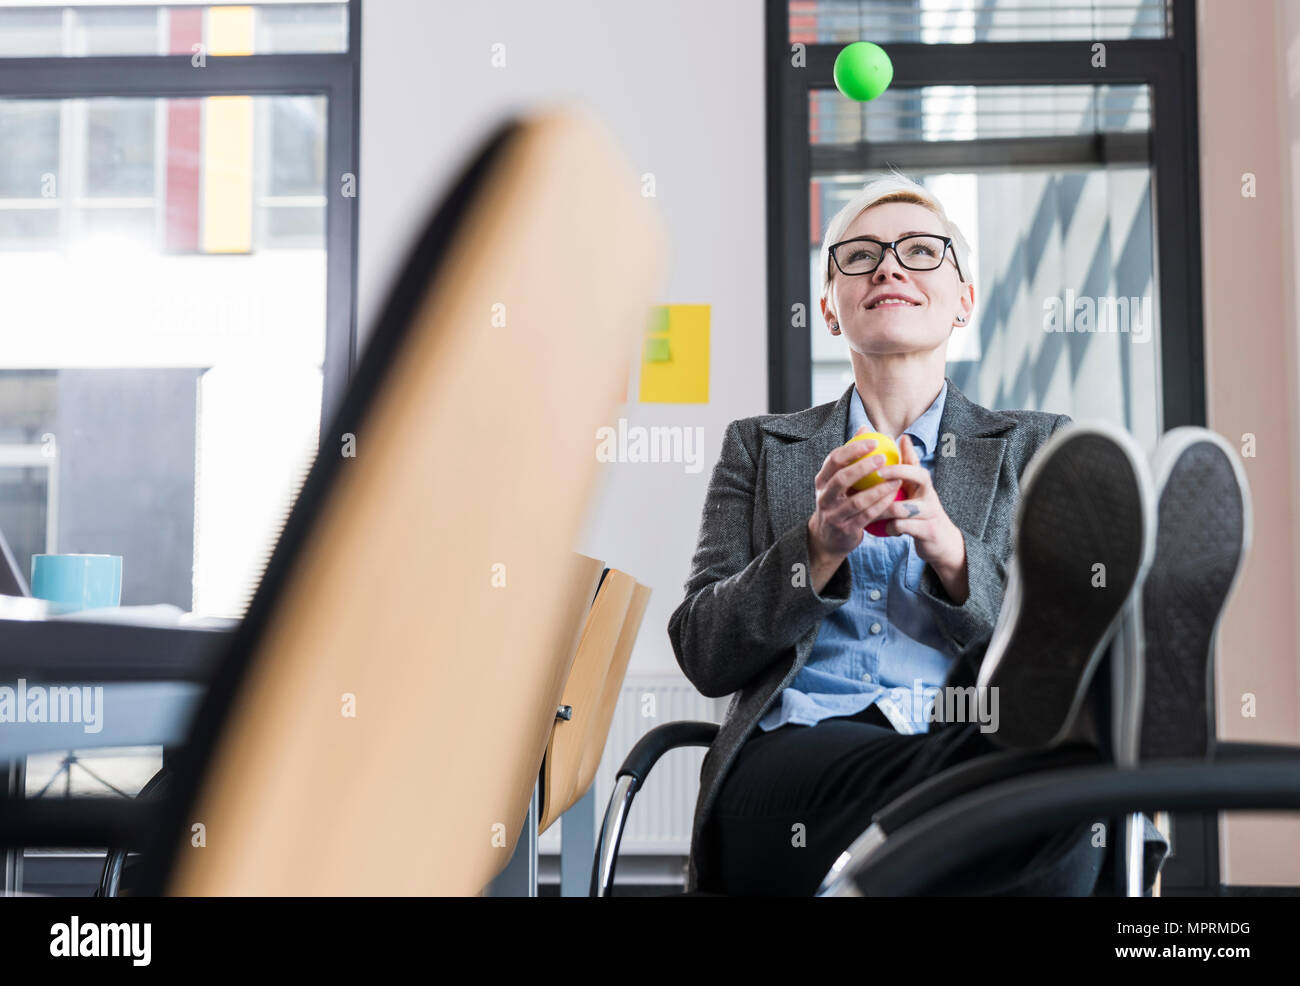 Smiling businesswoman juggling with balls in office - Stock Image